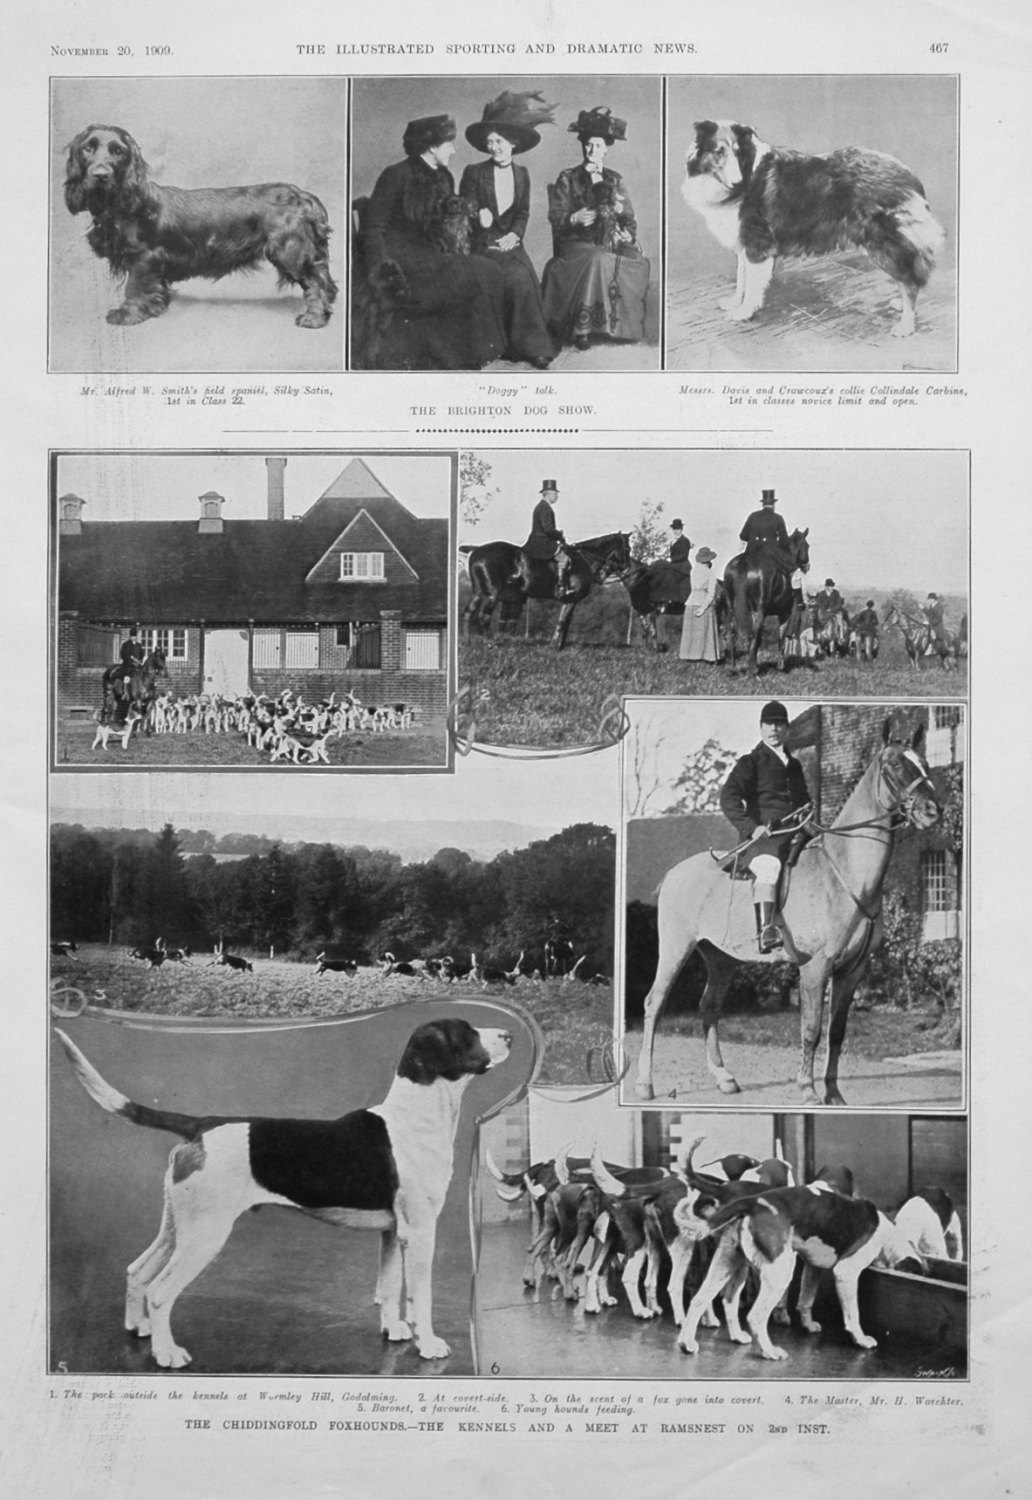 The Chiddingfold Foxhounds. - The Kennels and a Meet at Ramsnest on 2nd ins